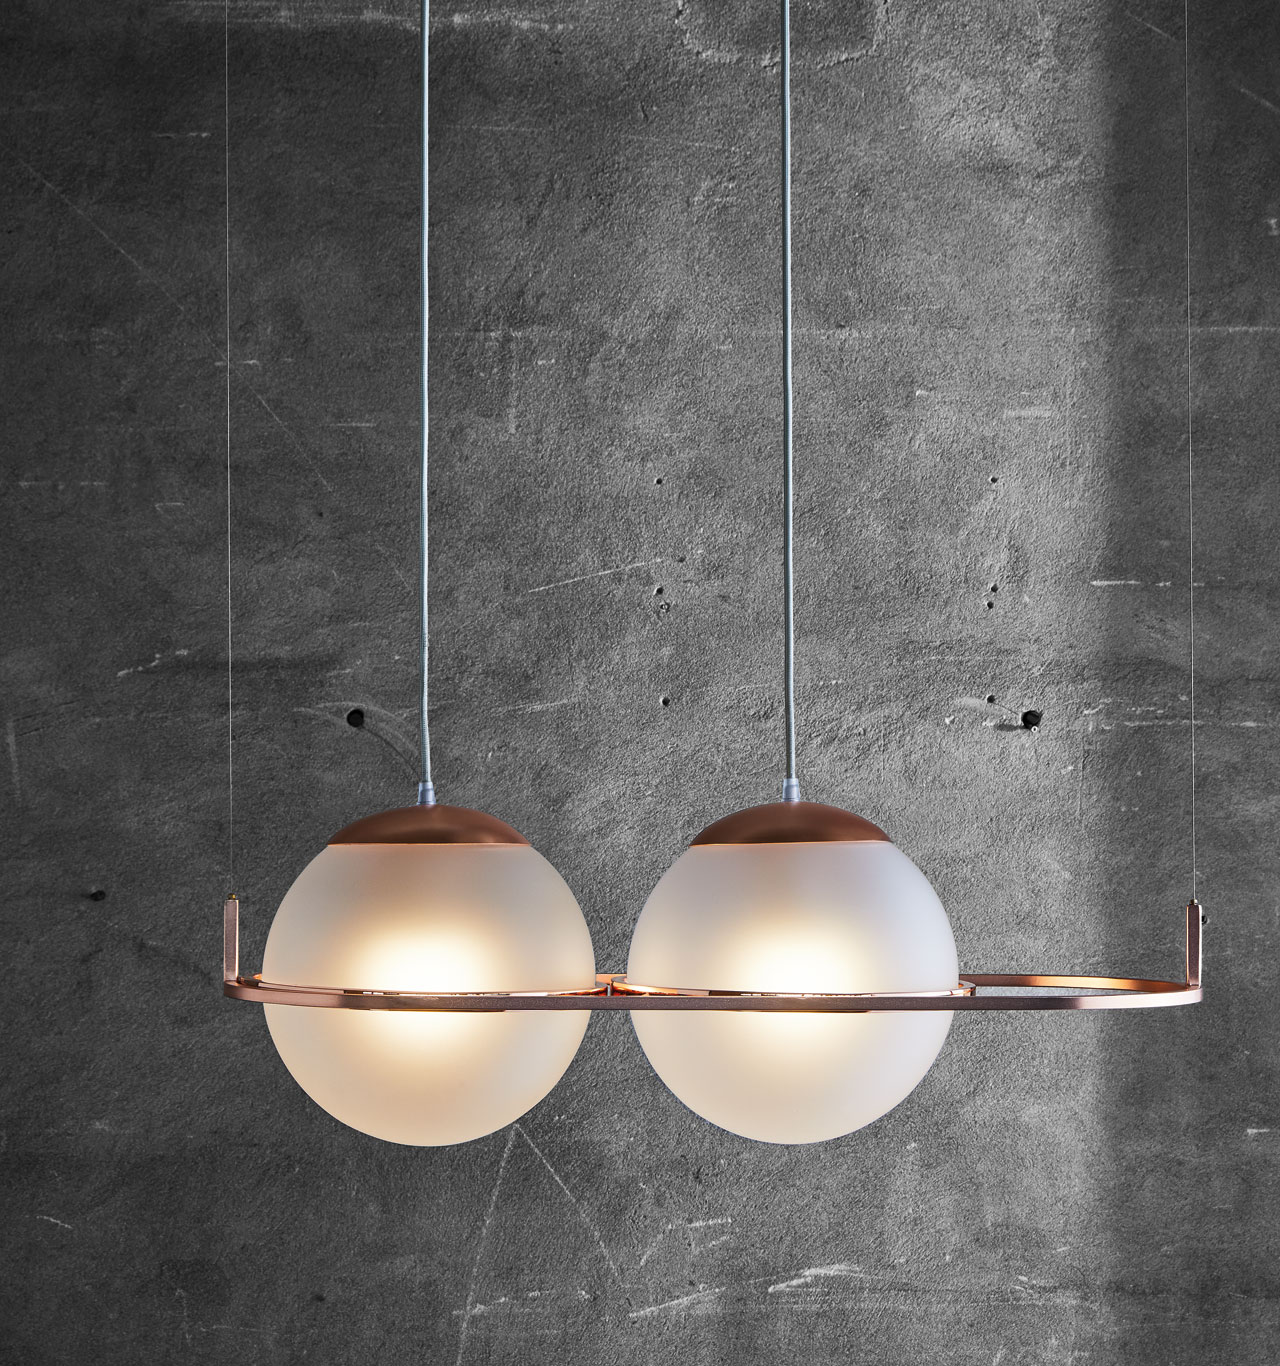 Déco lamp by Federica Biasi for Mingardo.